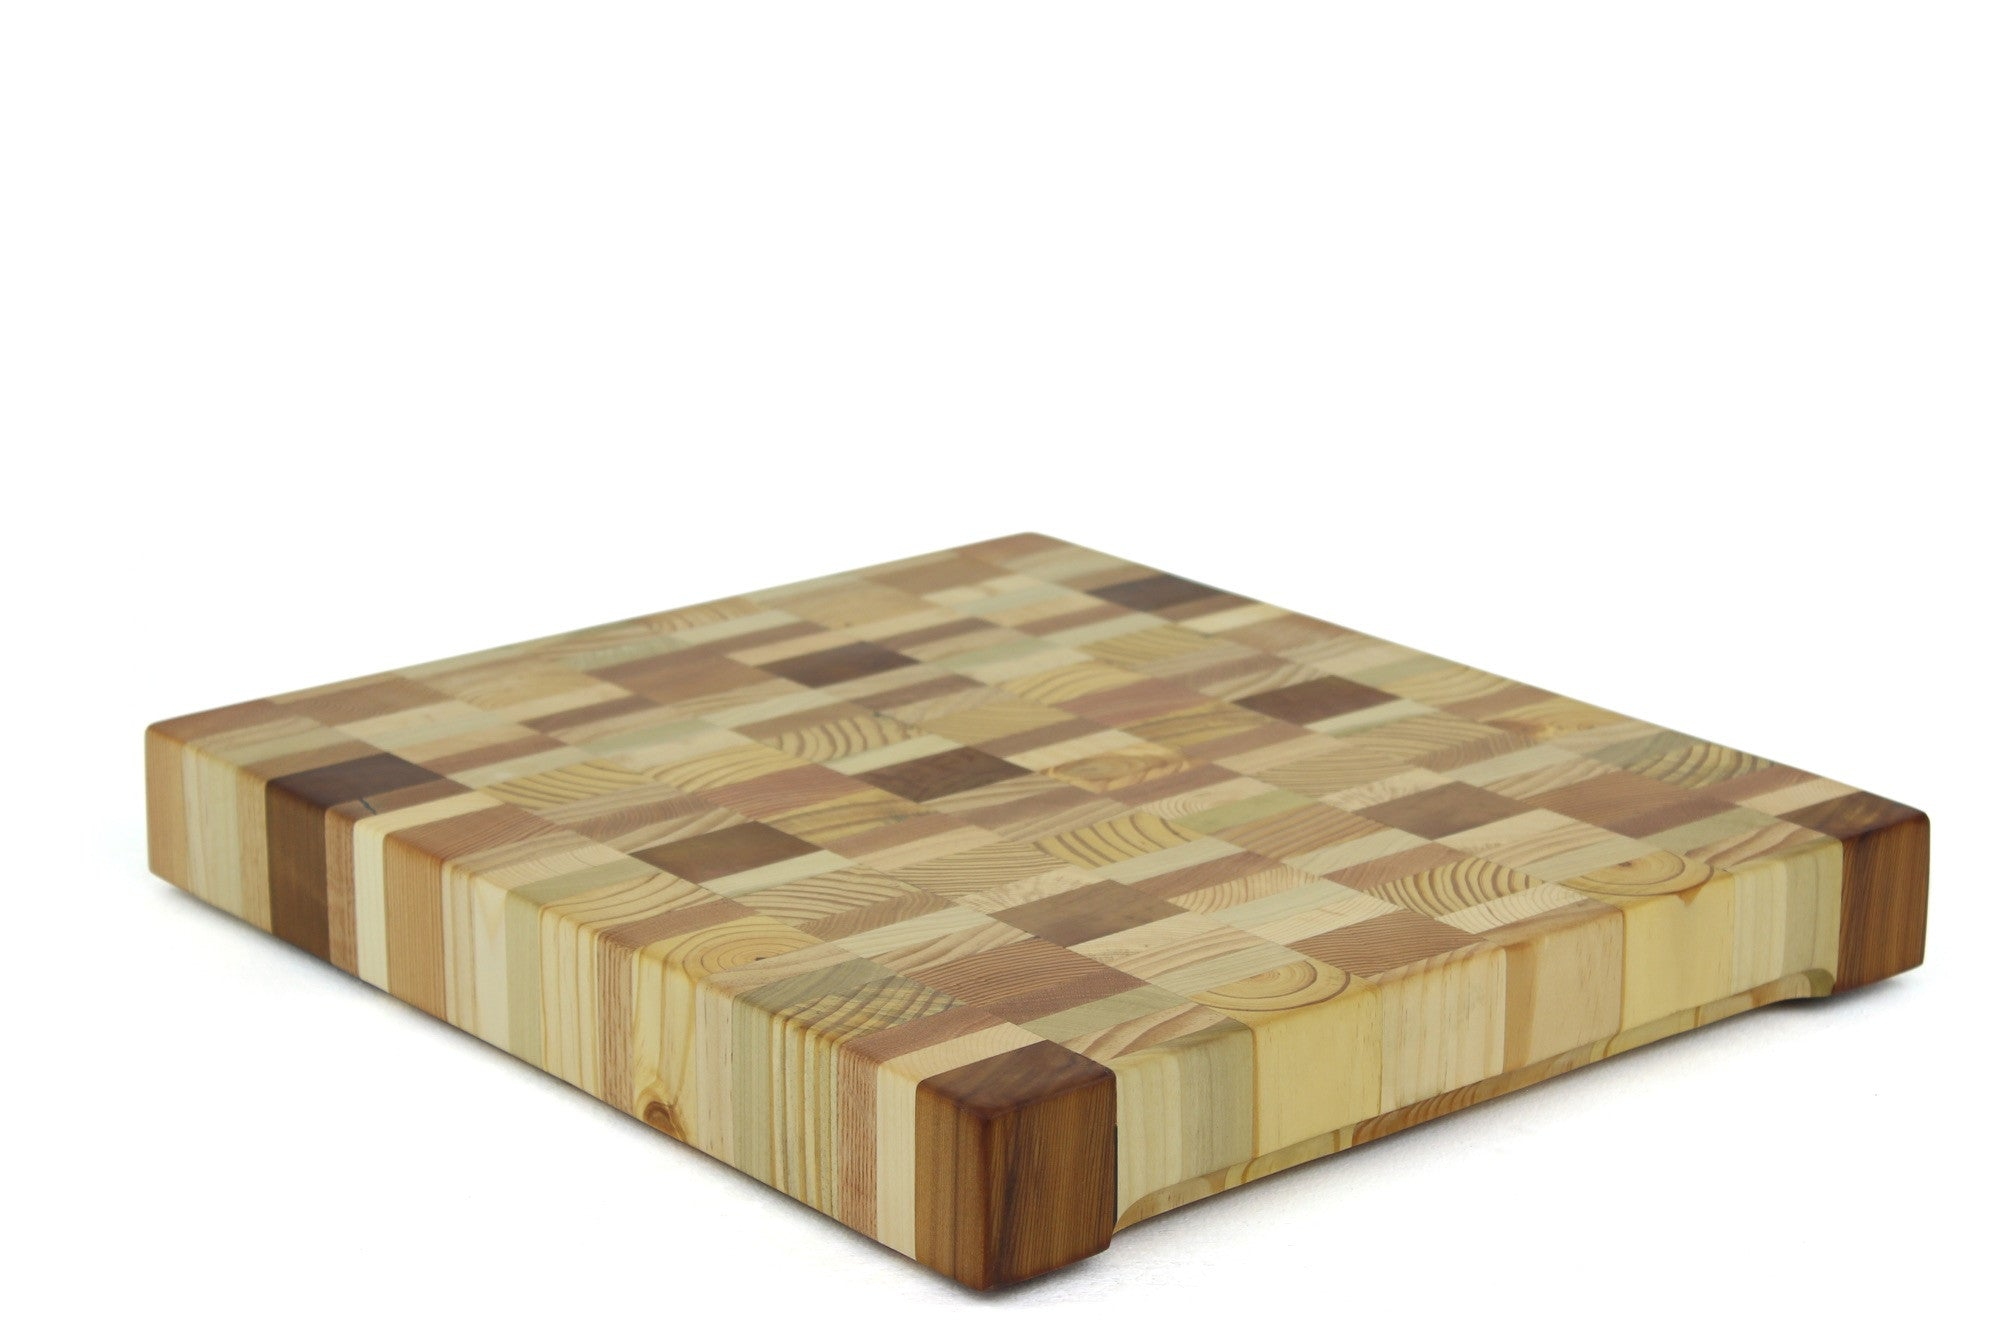 Blended Woods End Grain Cutting Board 19 x 17